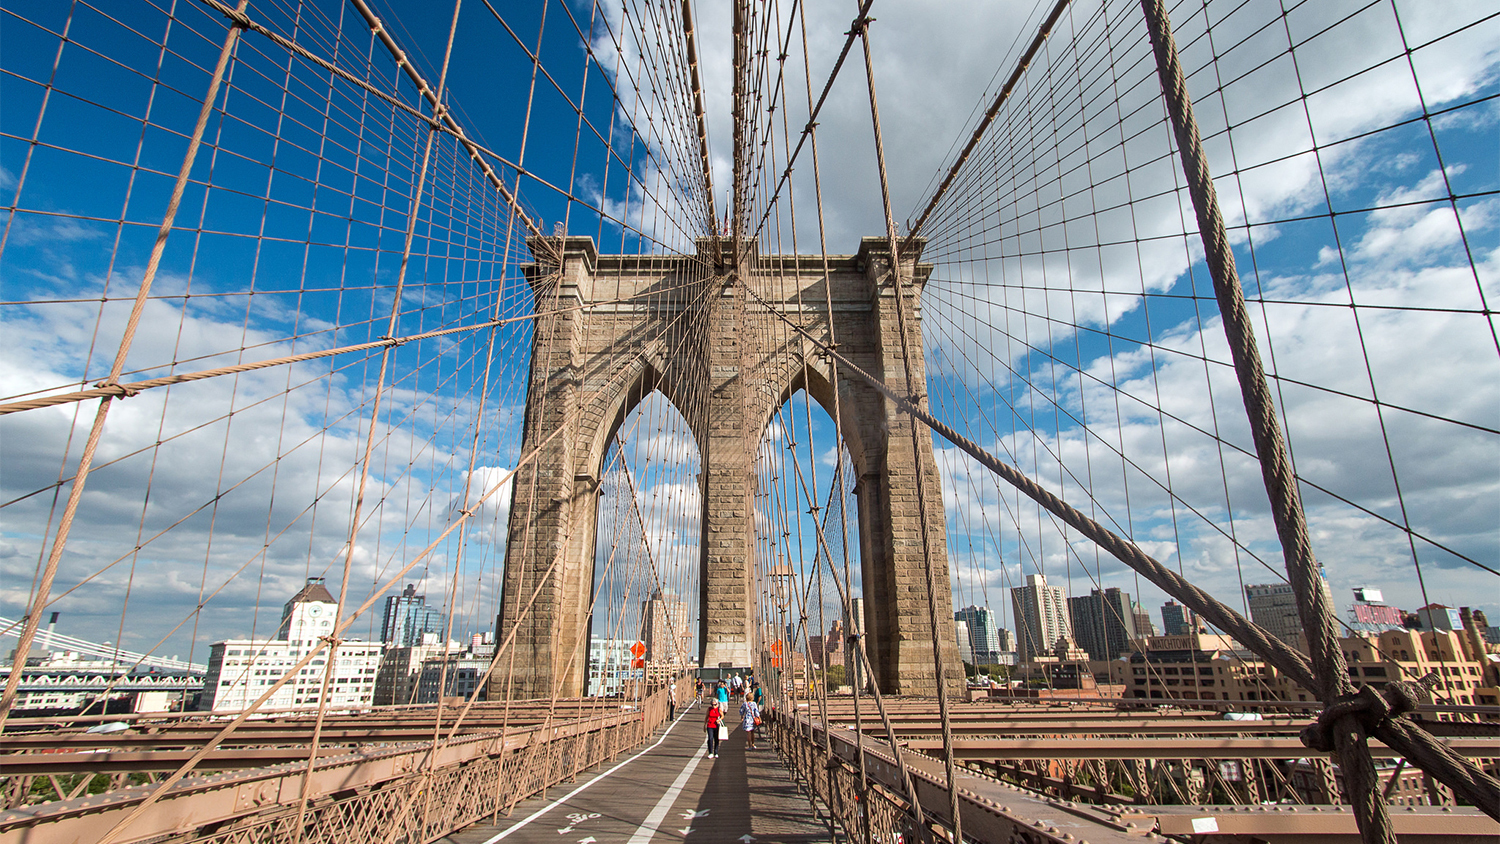 50 best new york attractions and nyc landmarks locals love for Attractions near new york city